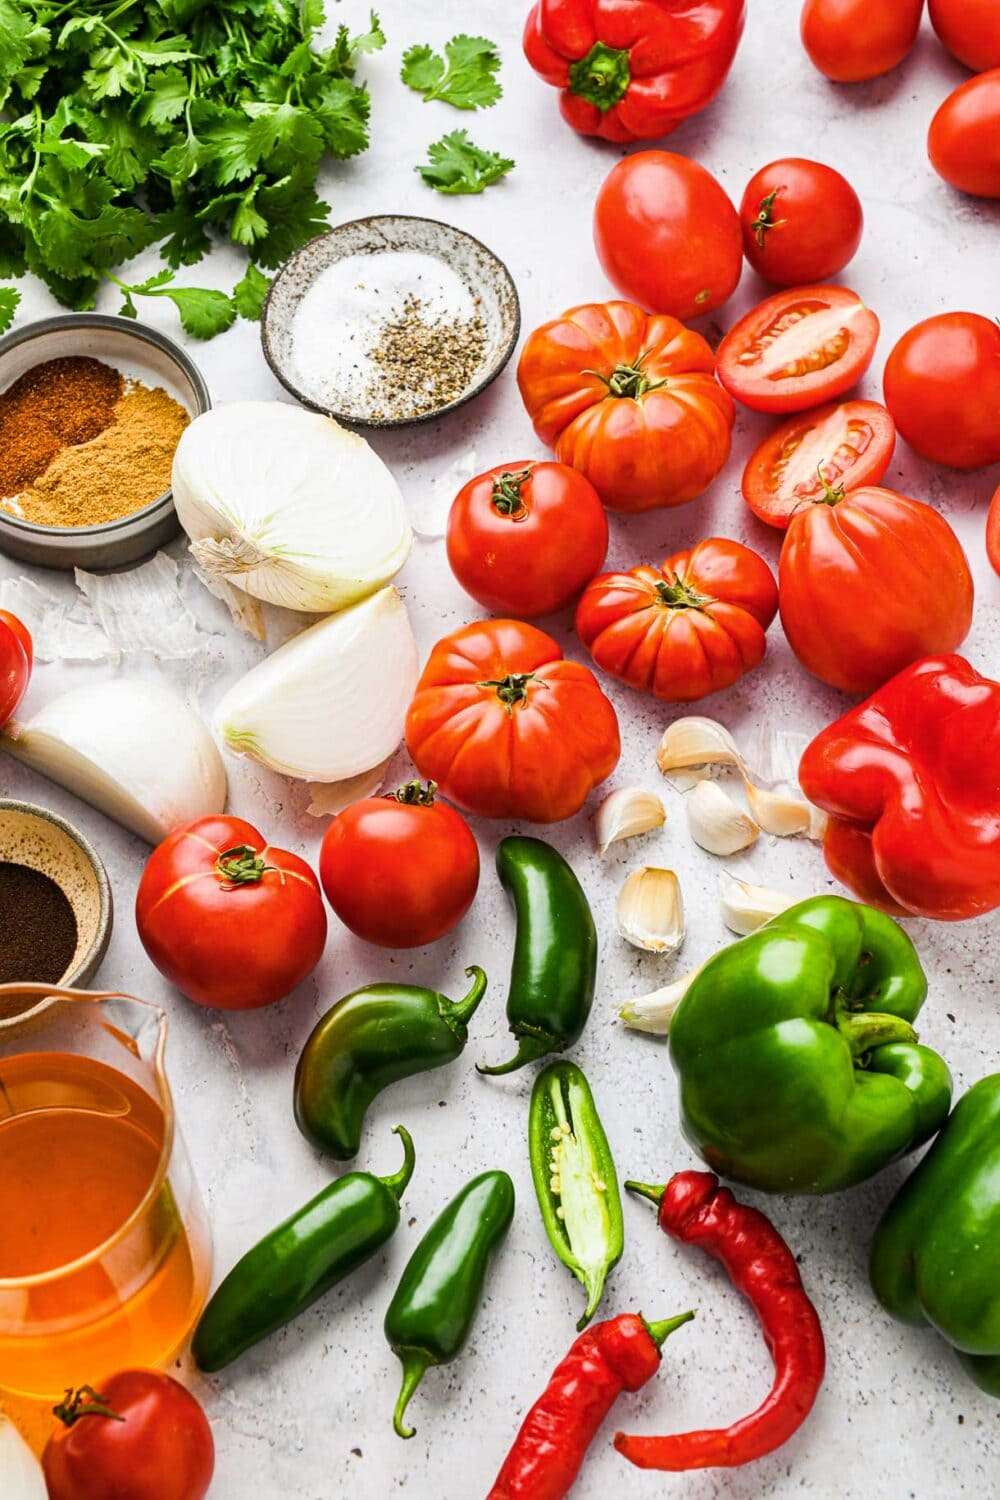 ingredients for canning salsa, with tomatoes, garlic, peppers, onions